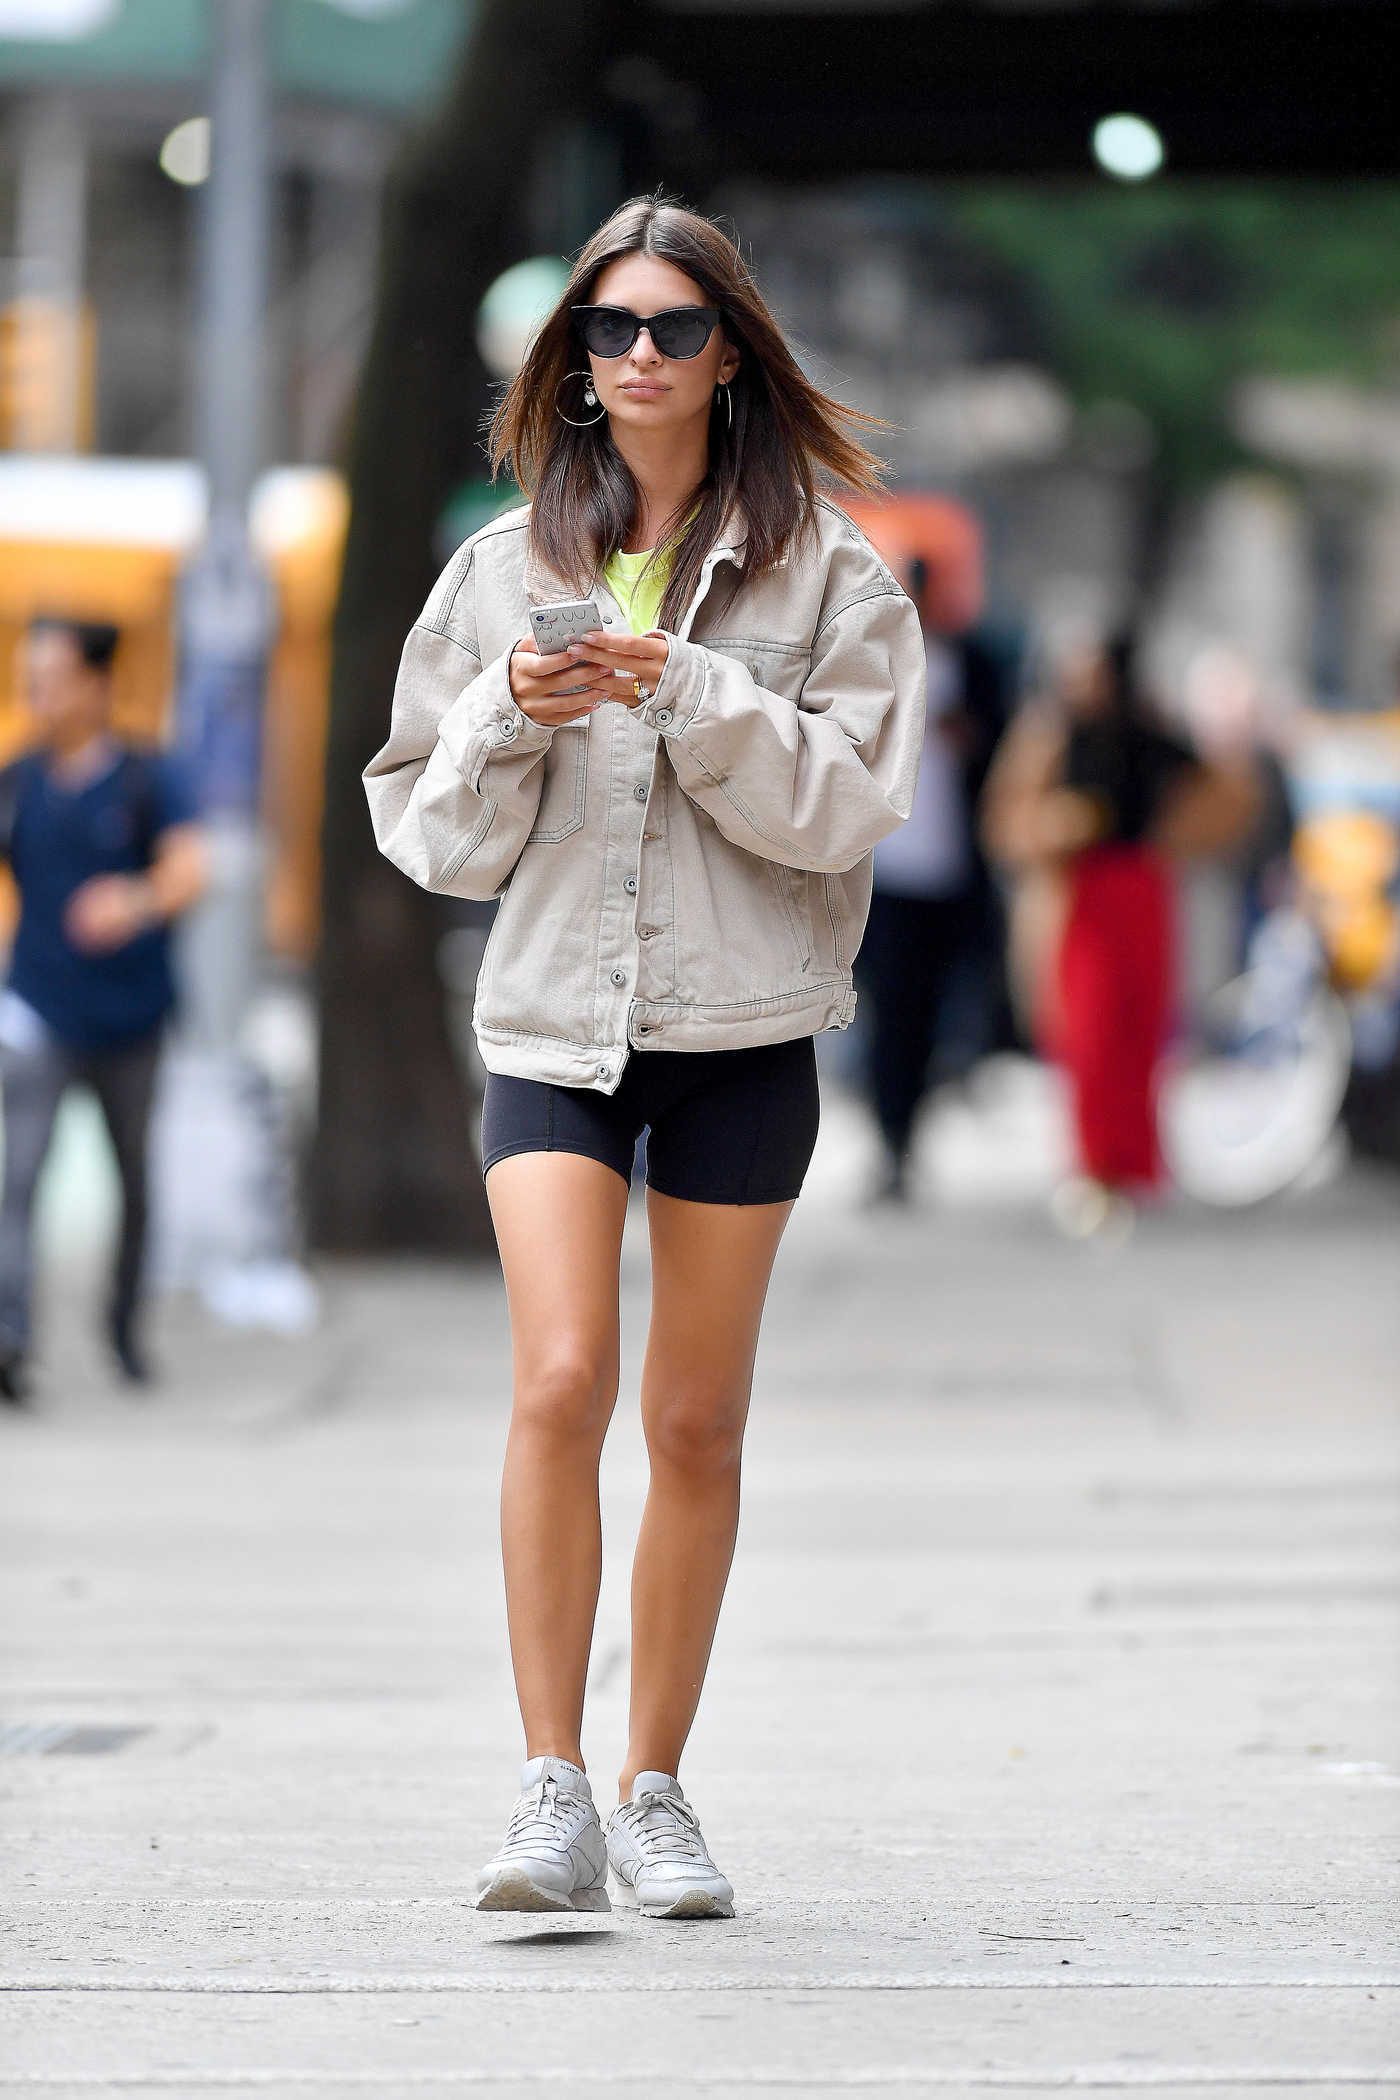 Emily Ratajkowski in a Black Spandex Shorts Was Seen Out in New York 10/05/2018